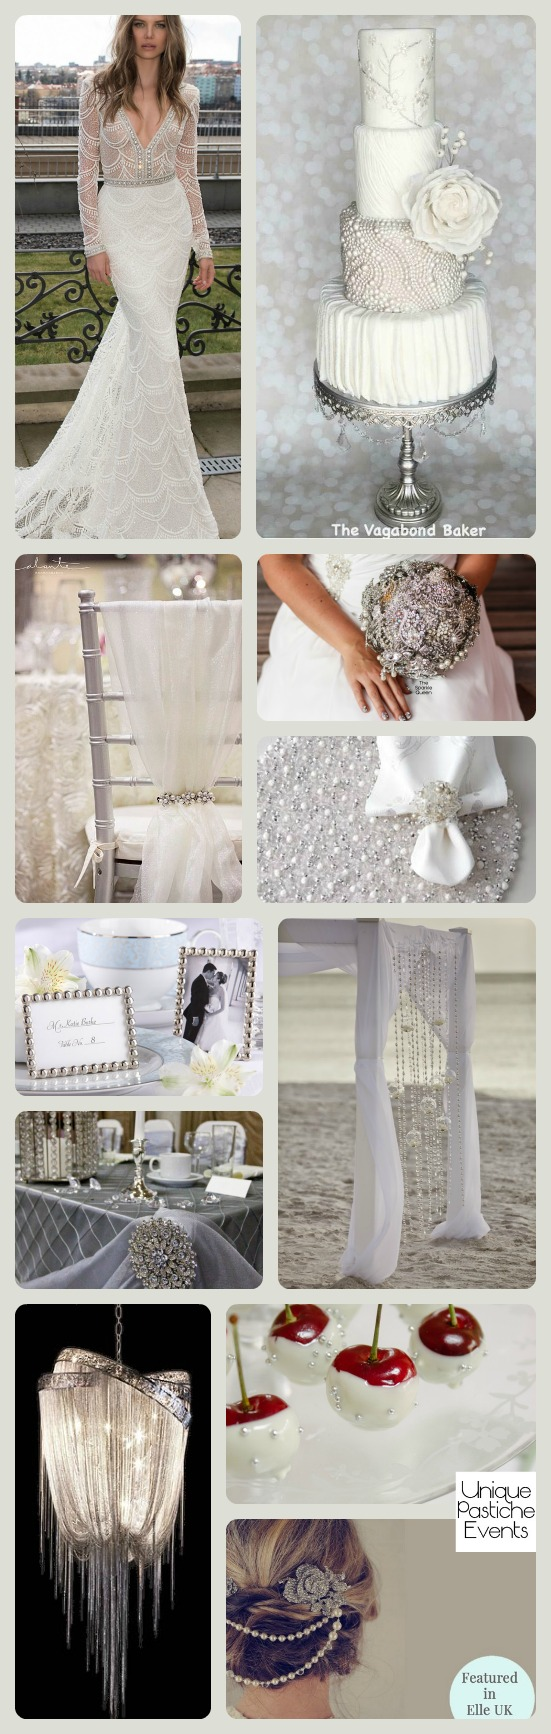 Crystals and Pearls: Seaside – Lux Wedding Inspiration Read all the details of this post: https://uniquepasticheevents.com/2016/02/03/crystals-and-pearls-seaside-lux-wedding-inspiration/